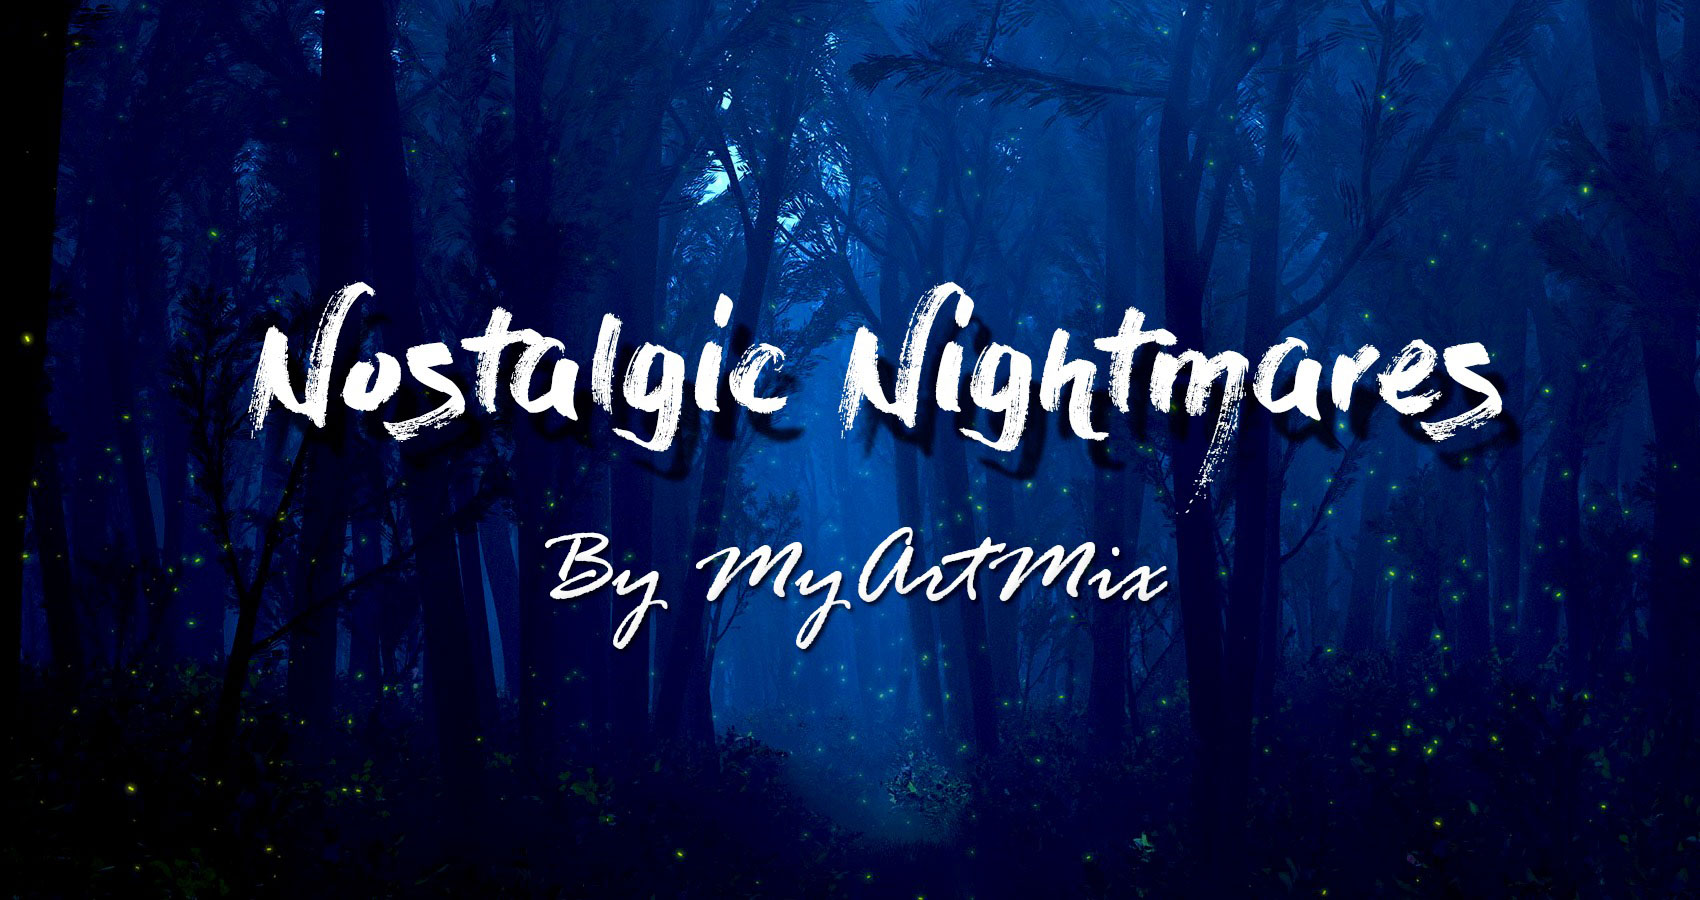 Nostalgic Nightmares by MyArtMix at Spillwords.com